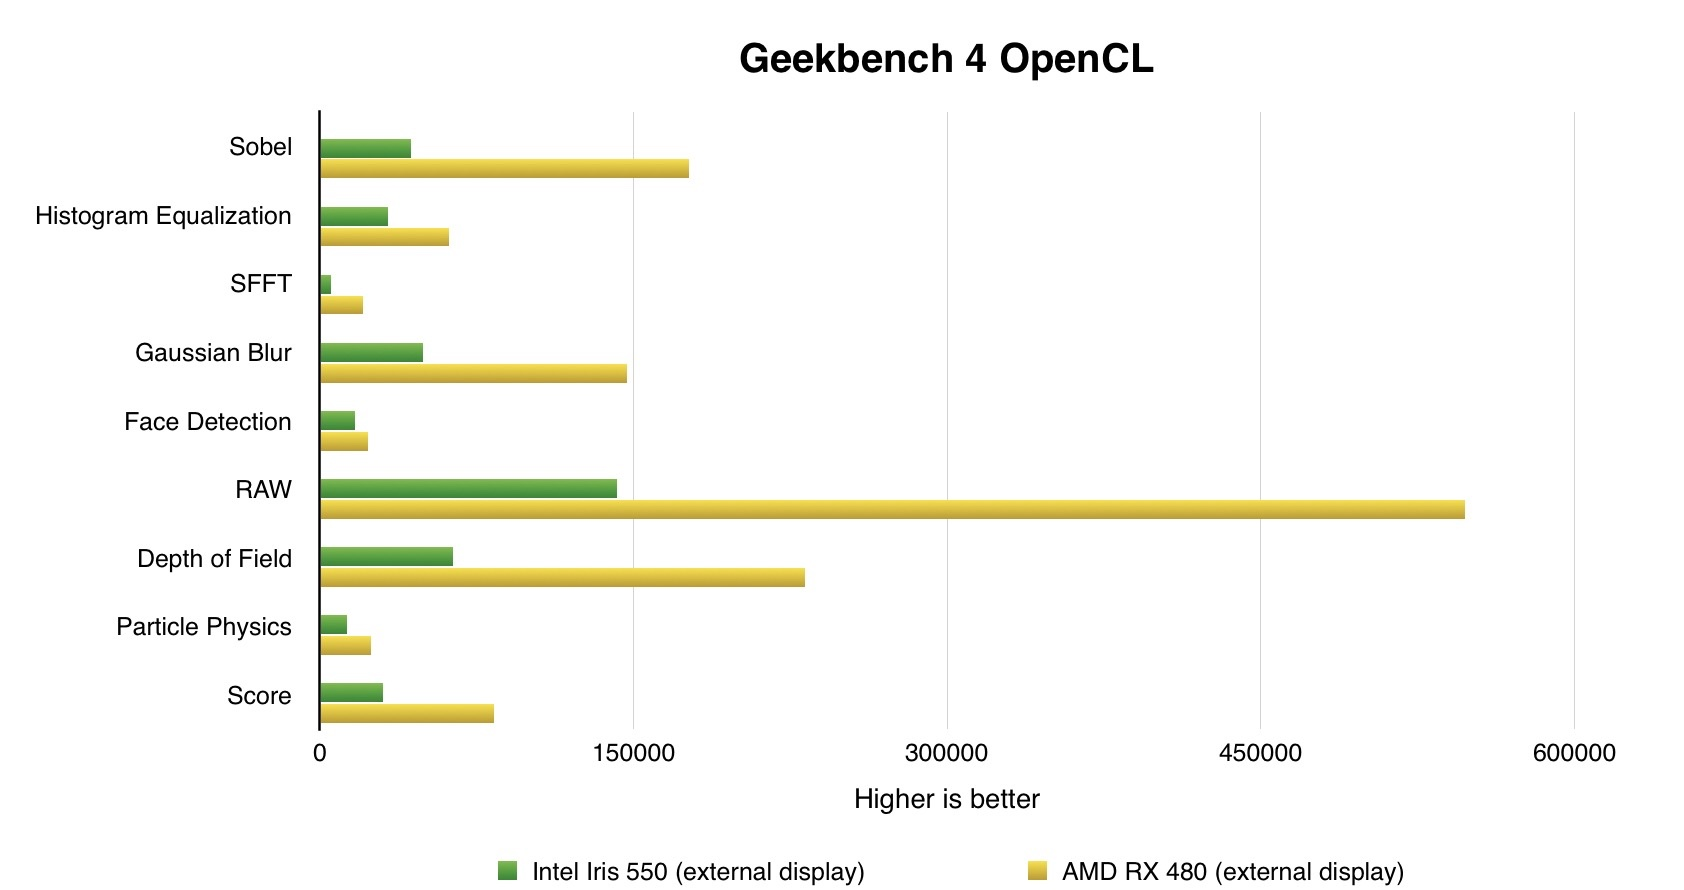 geekbench-4-opencl